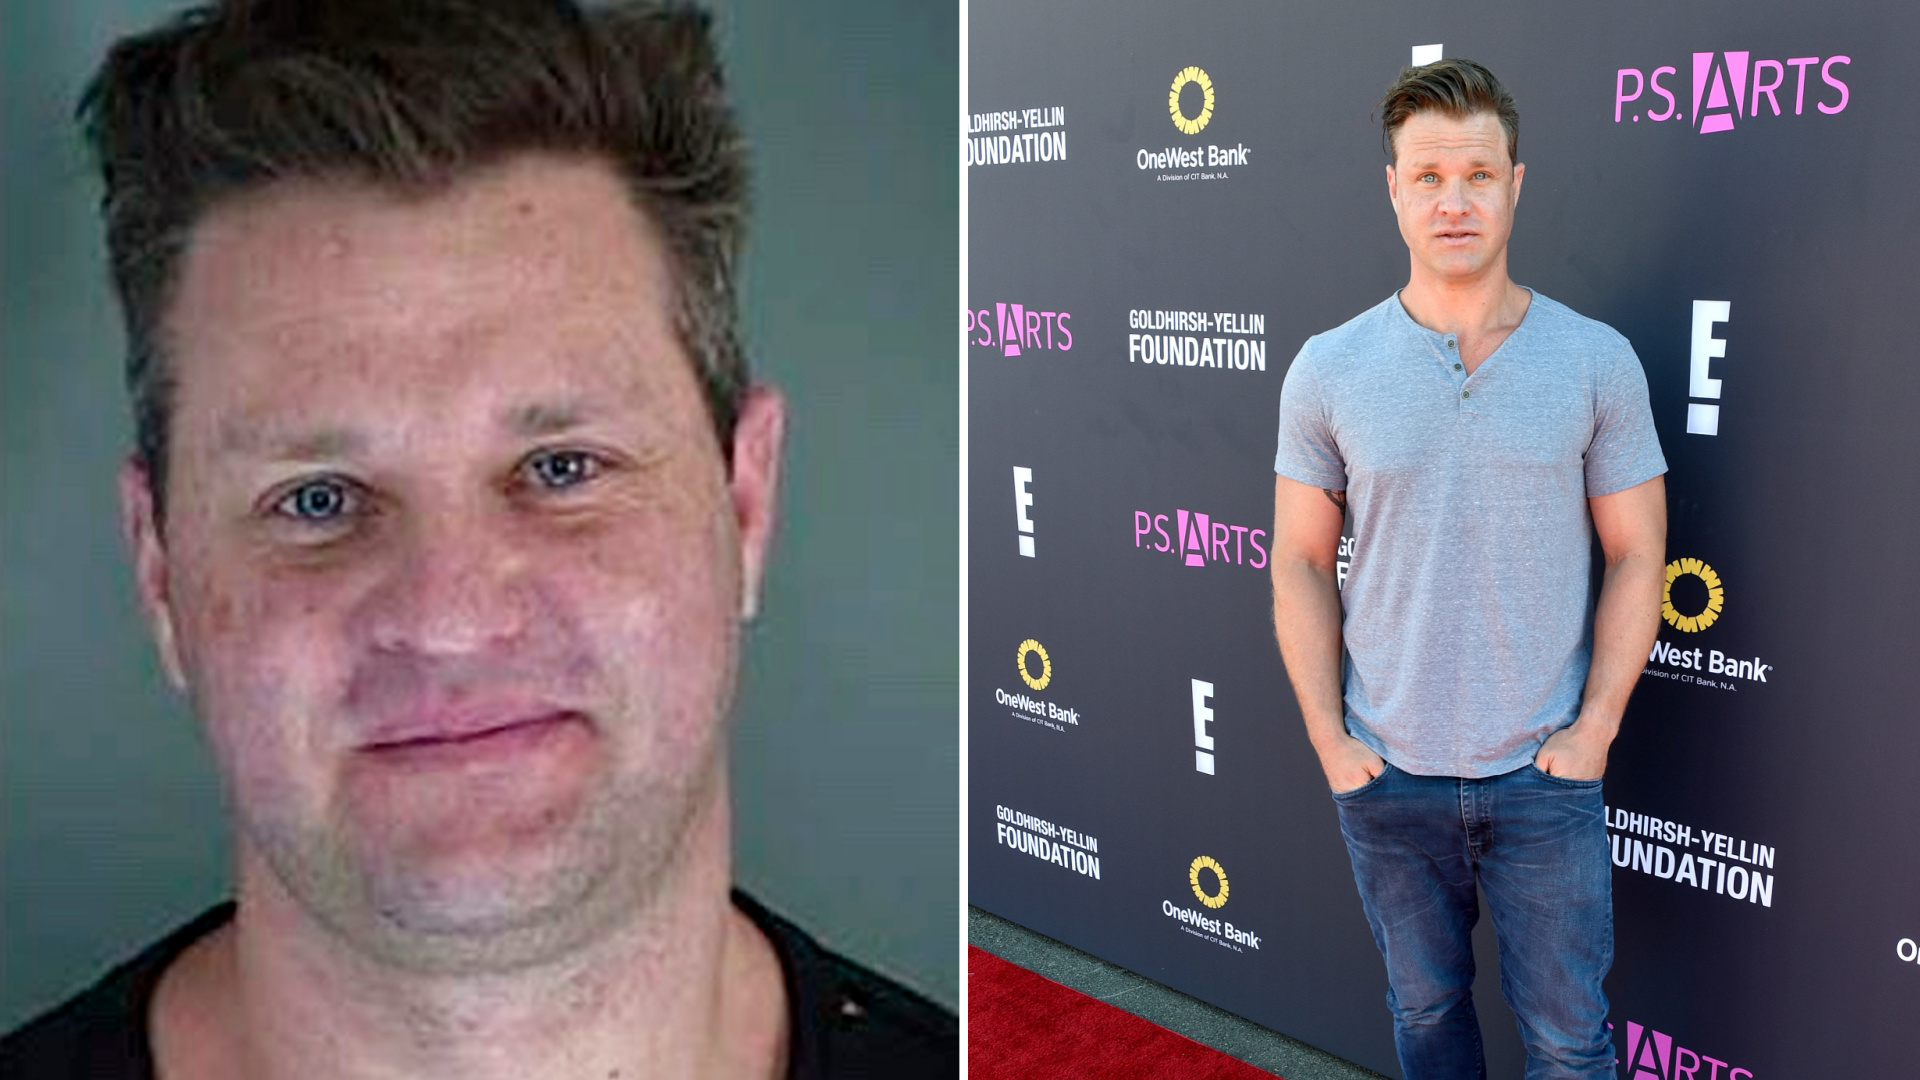 This booking photo released Saturday, Oct. 17, 2020, by the Eugene, Ore., Police Department shows suspect Zachery Ty Bryan. On the right, the actor is seen Nov.13, 2016, at an event in Santa Monica, California. (Joshua Blanchard/Getty Images for P.S. ARTS)